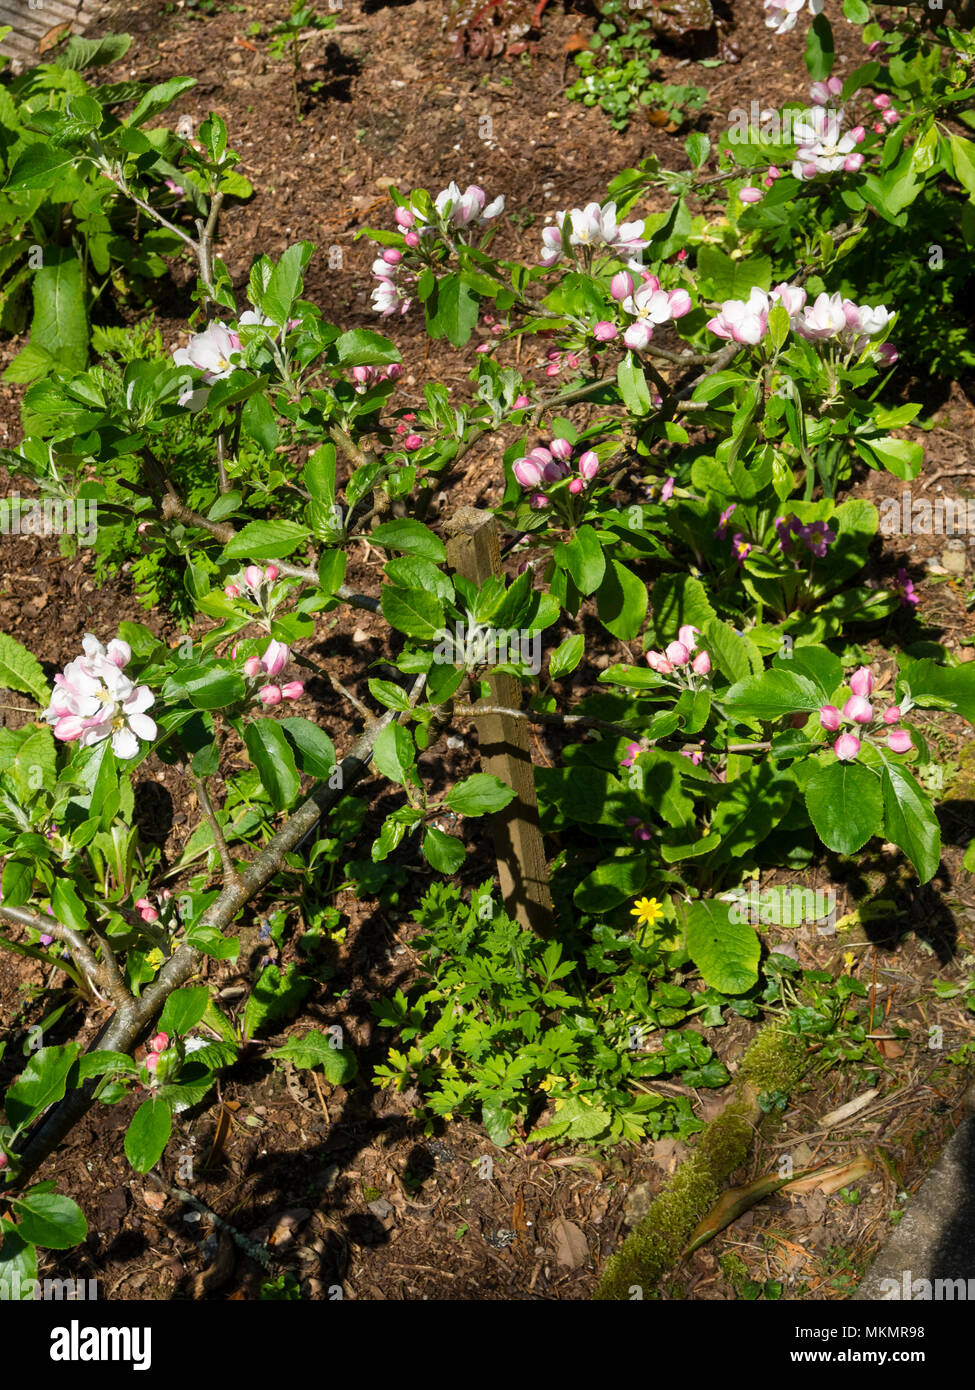 Pink and white spring Apple blossom of the heritage variety (Cornwall 1800), Malus 'Cornish Gillyflower', trained as a single cordon step over fruit - Stock Image